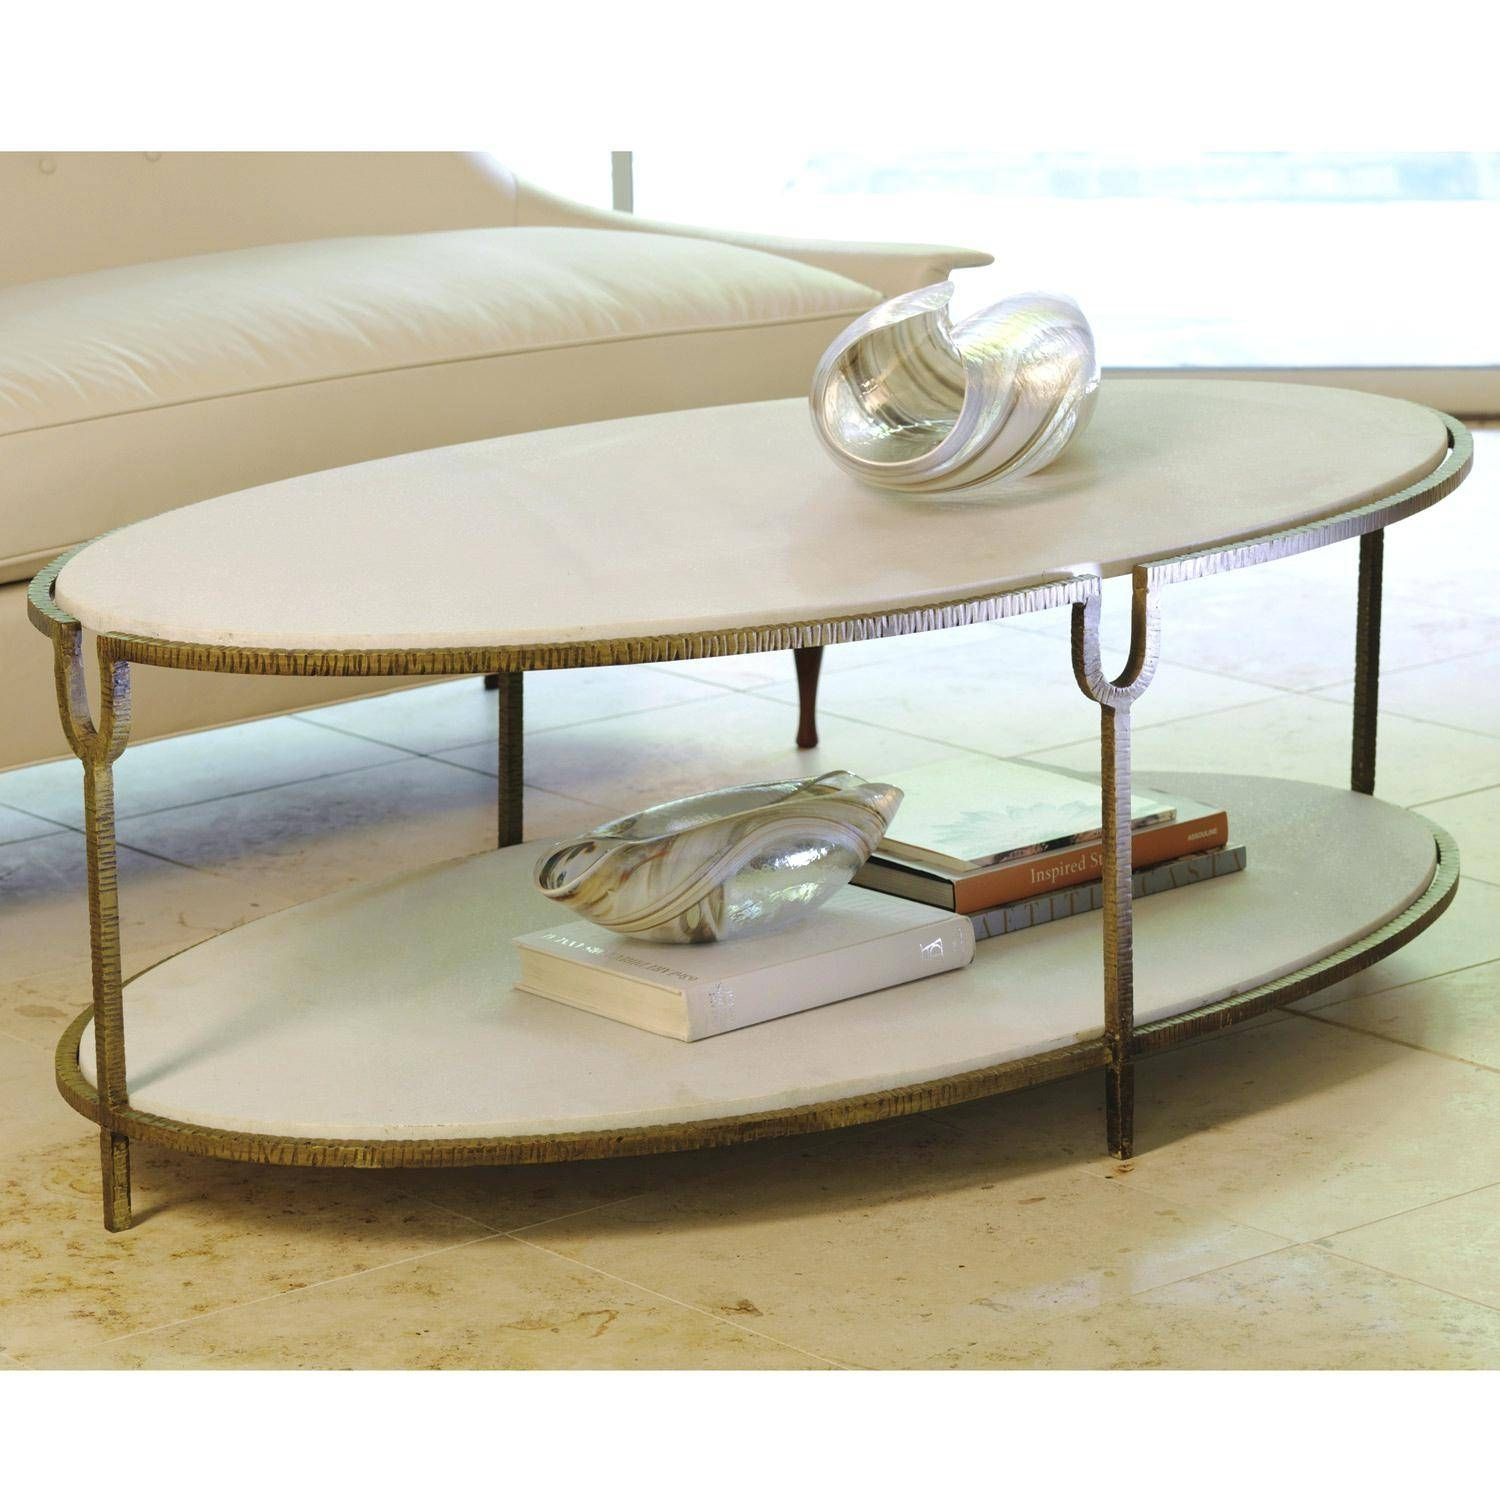 Oval Shaped Marble Coffee Table Httptherapybychancecom Pinterest - Oval shaped marble coffee table